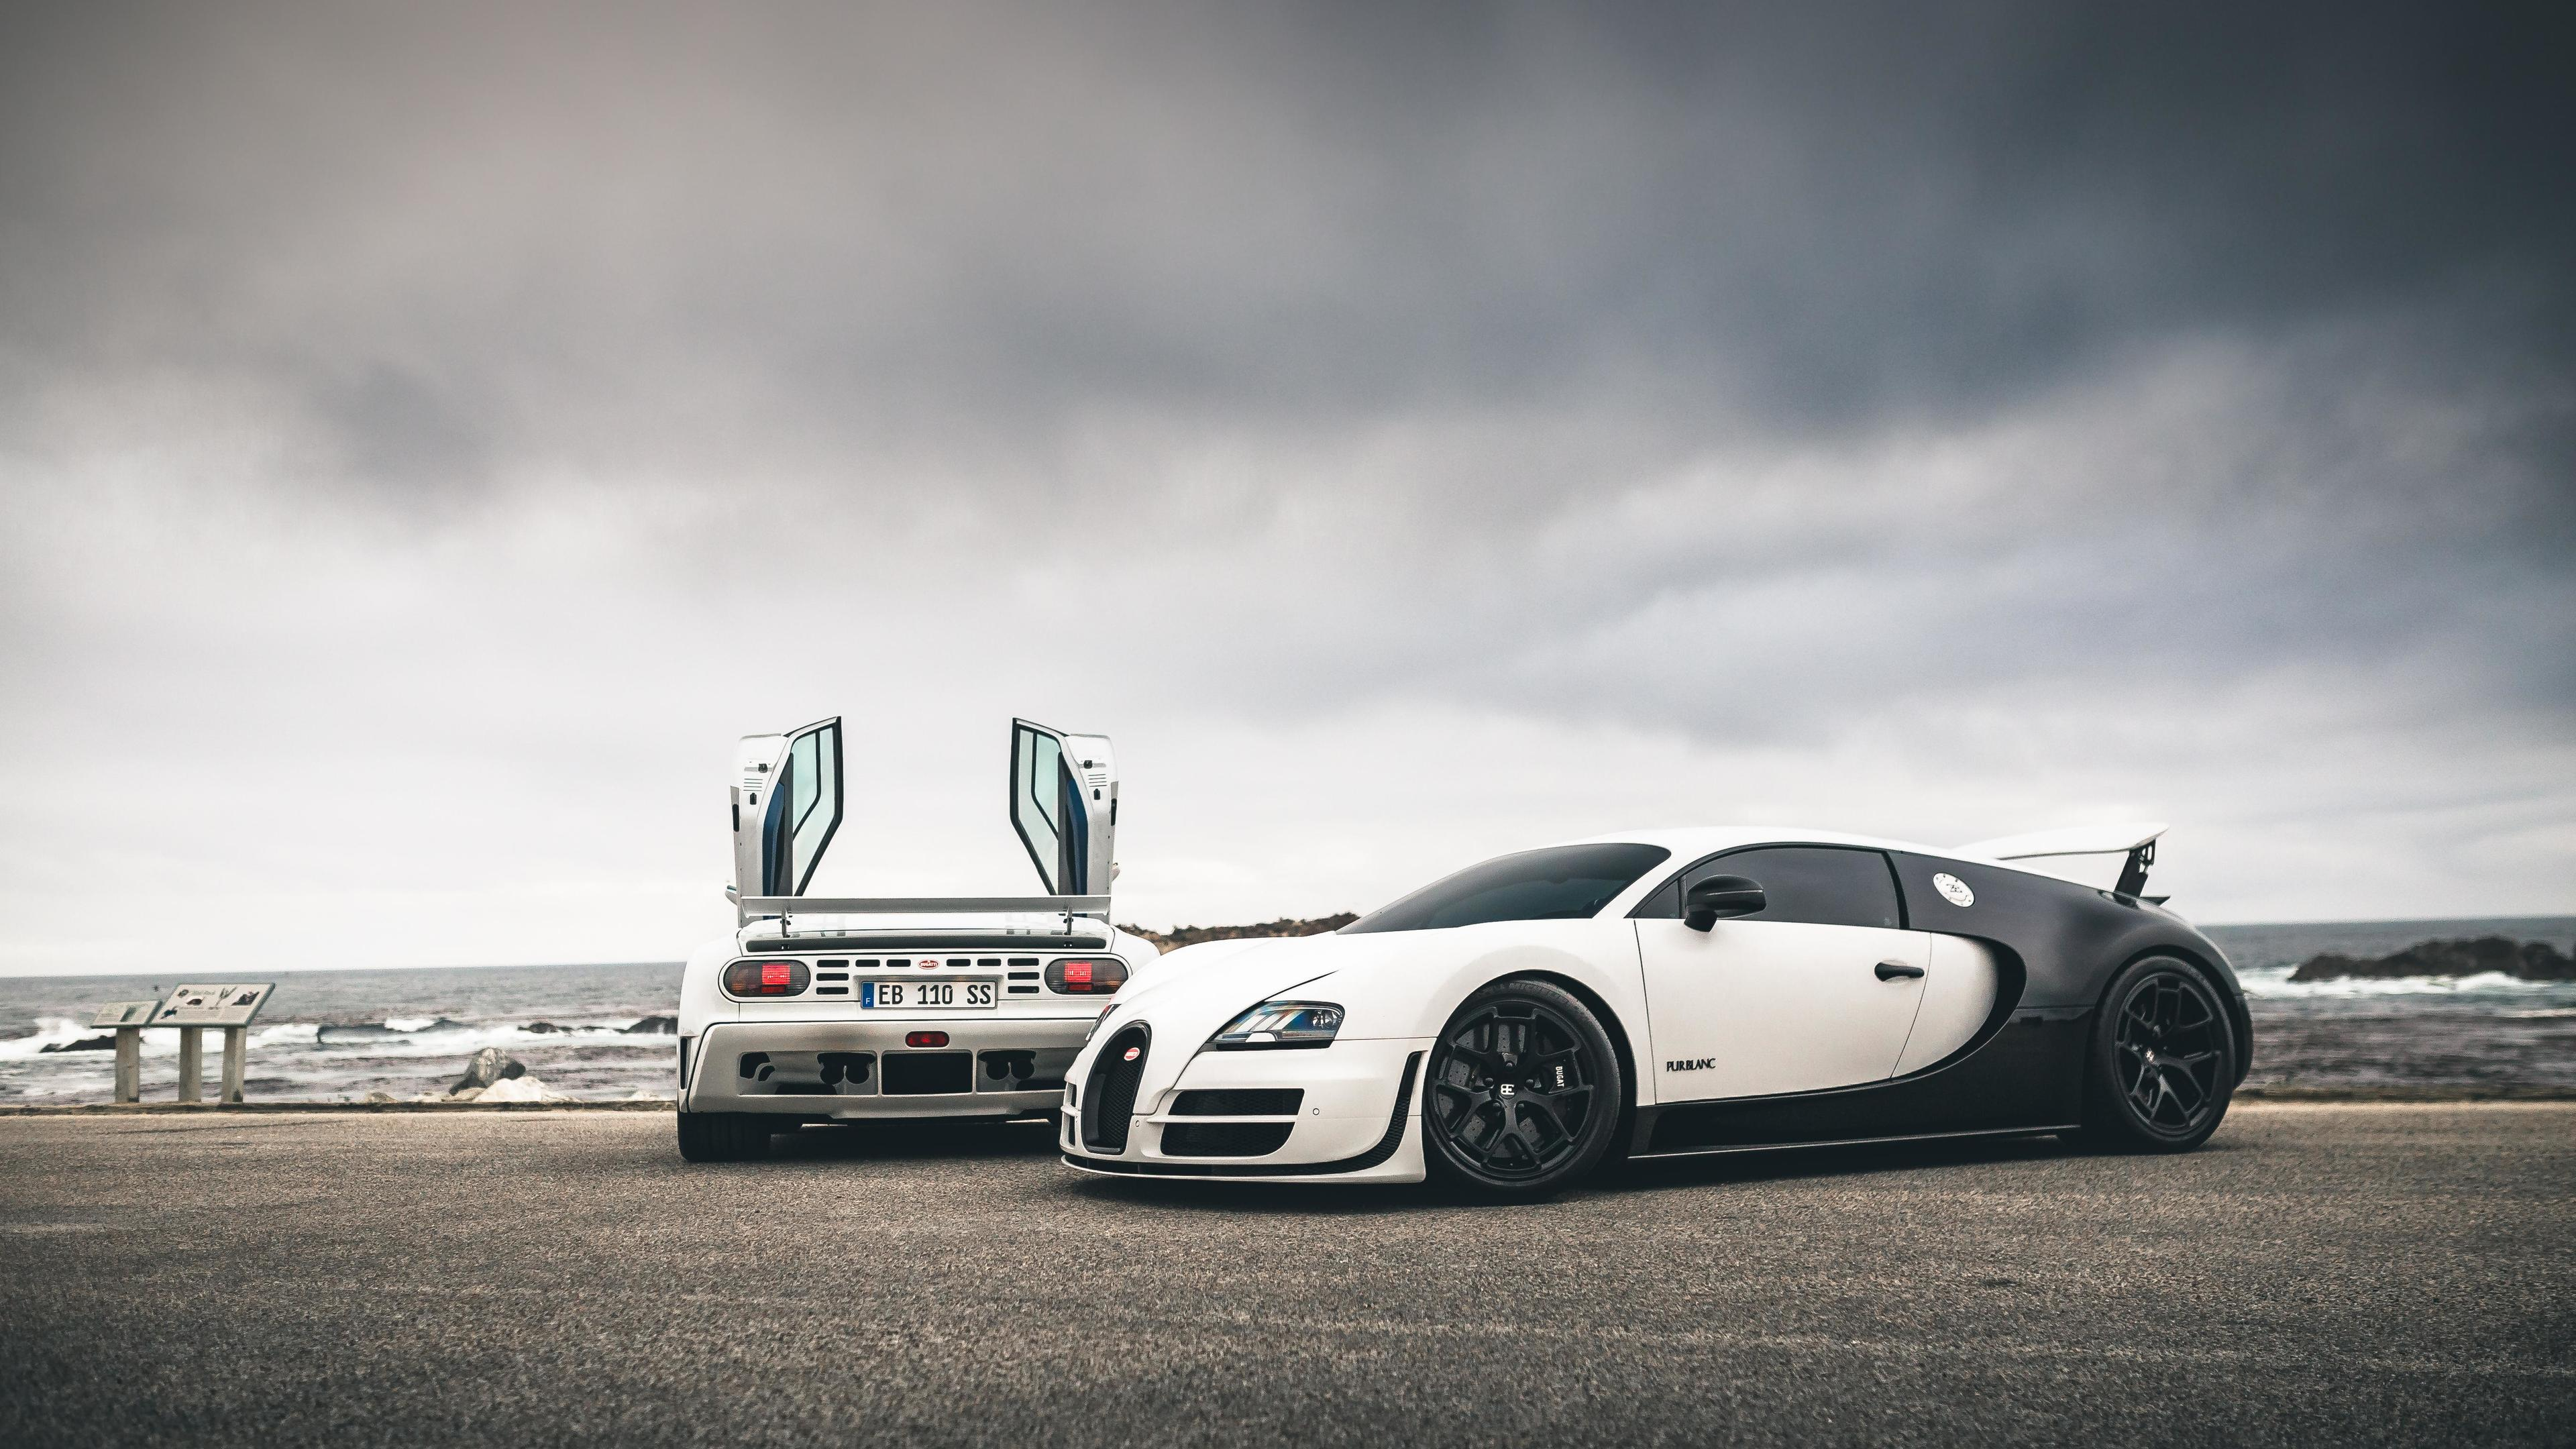 Wallpaper 4k Bugatti Veyron Ss And Eb110ss By The Sea 5k 4k